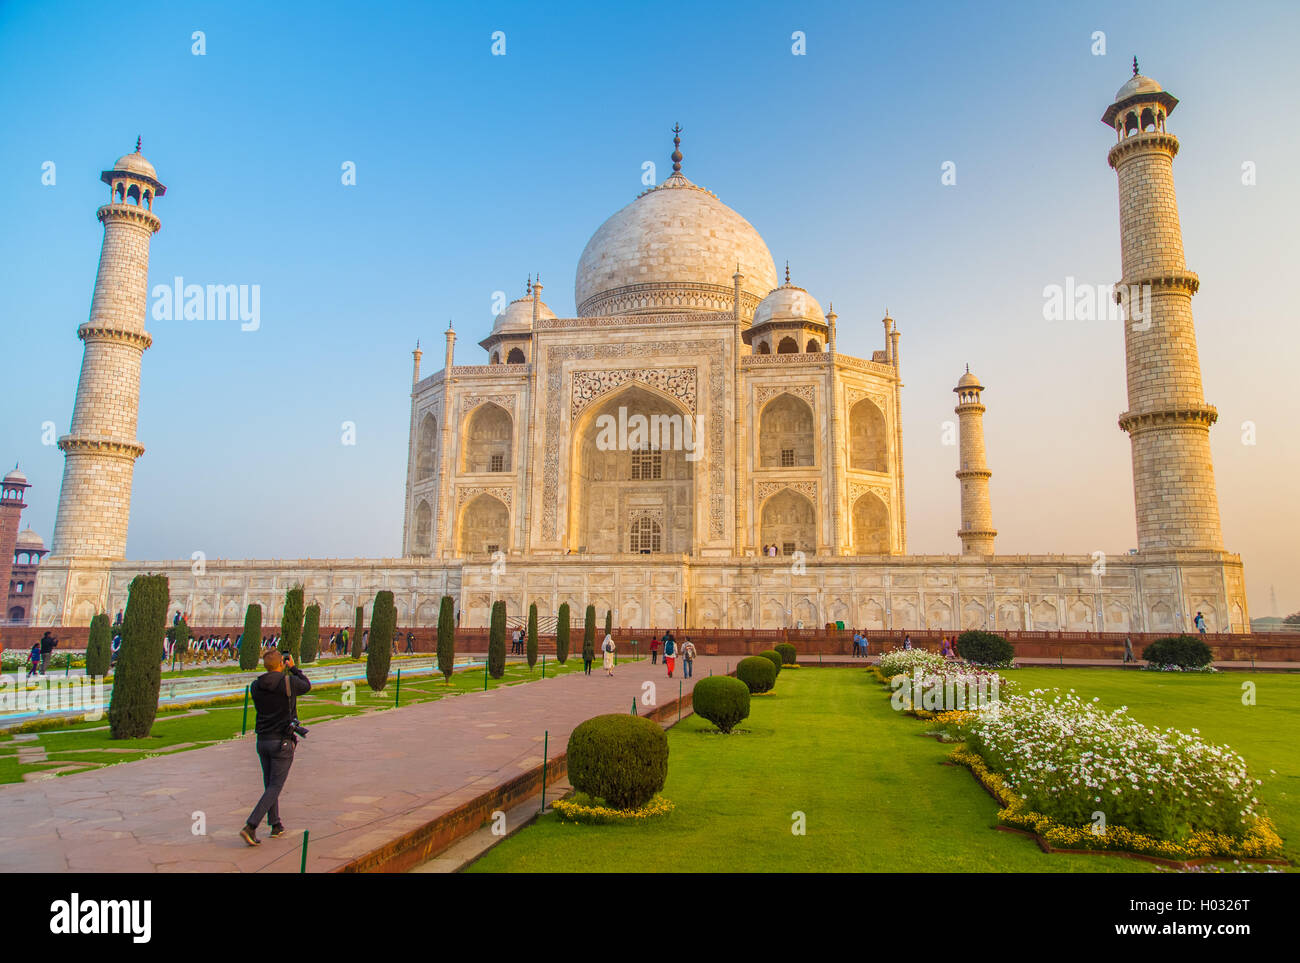 AGRA, INDIA - 28 FEBRUARY 2015: View of Taj Mahal towards South side. Visitor with camera. - Stock Image